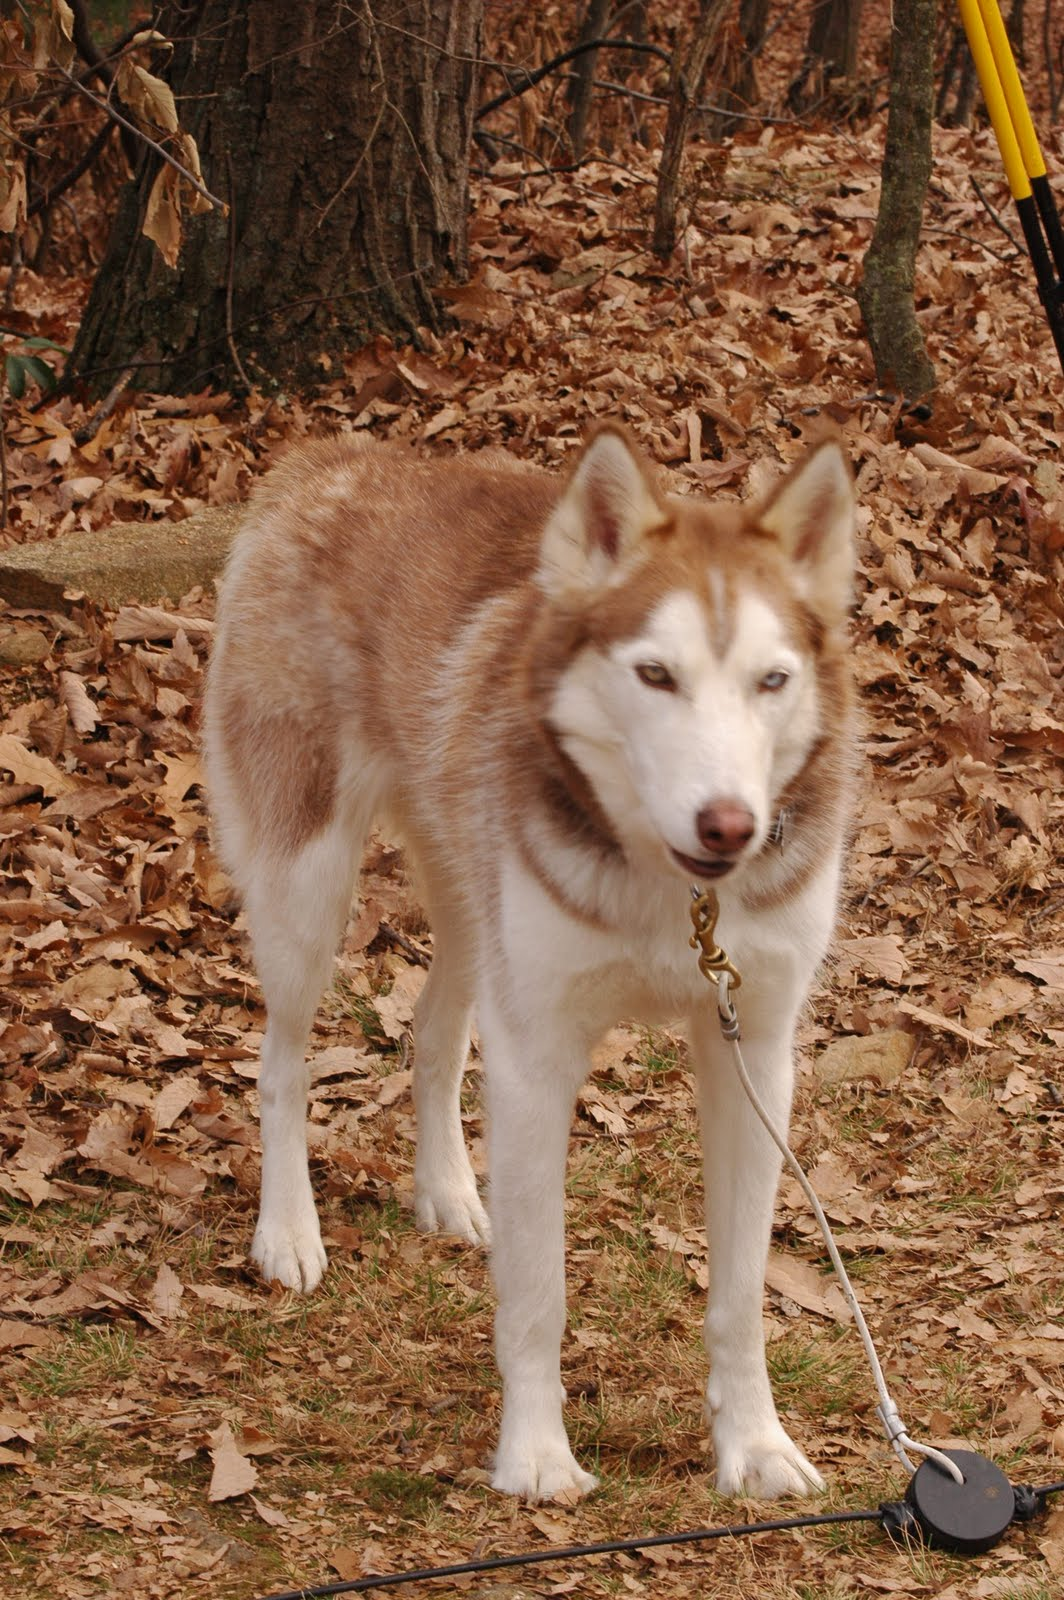 Maryland Sled Dog Adventures Llc State College Pa Tow